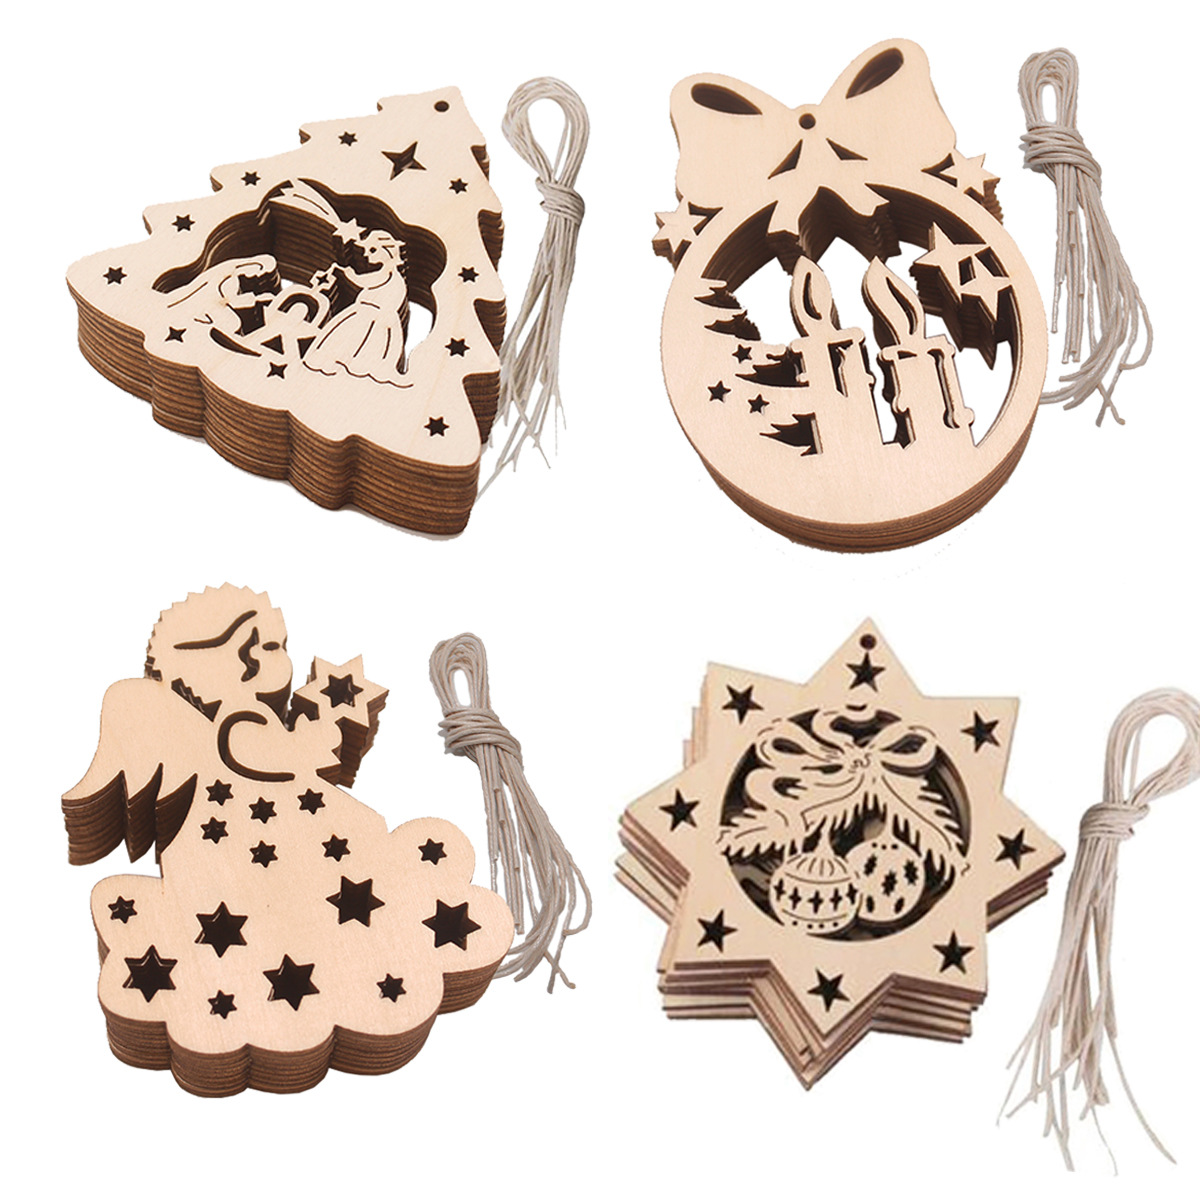 10pcs Wooden Candle Baubles Tags Christmas Trees Decorations Ornaments Christmas DIY Craft Toys Gifs For Children